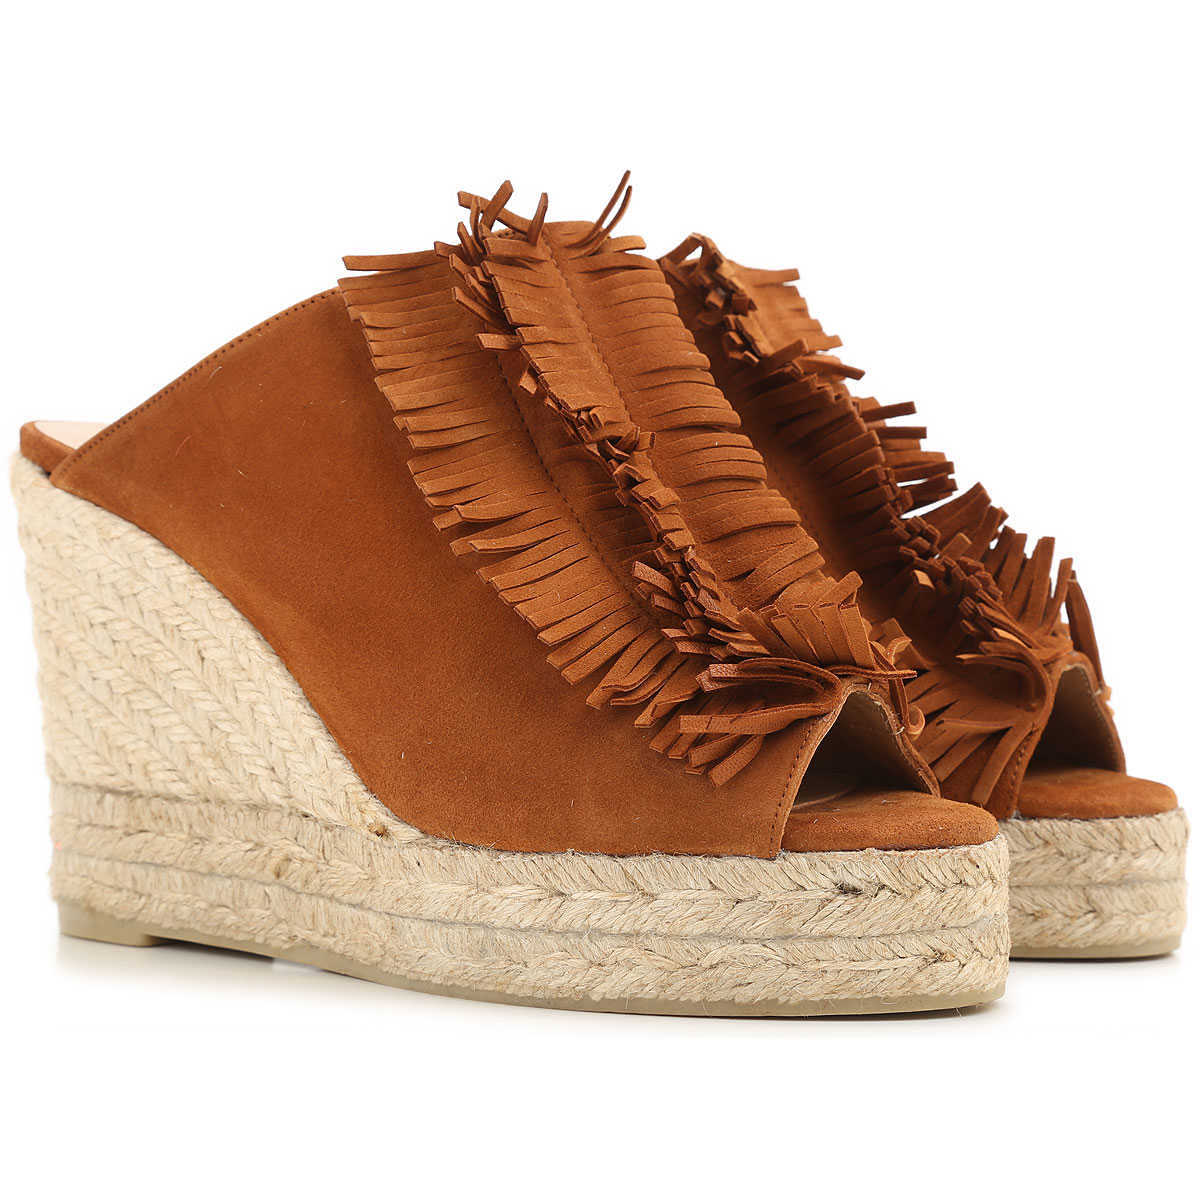 Castaner Wedges for Women in Outlet Rust Canada - GOOFASH - Womens HOUSE SHOES